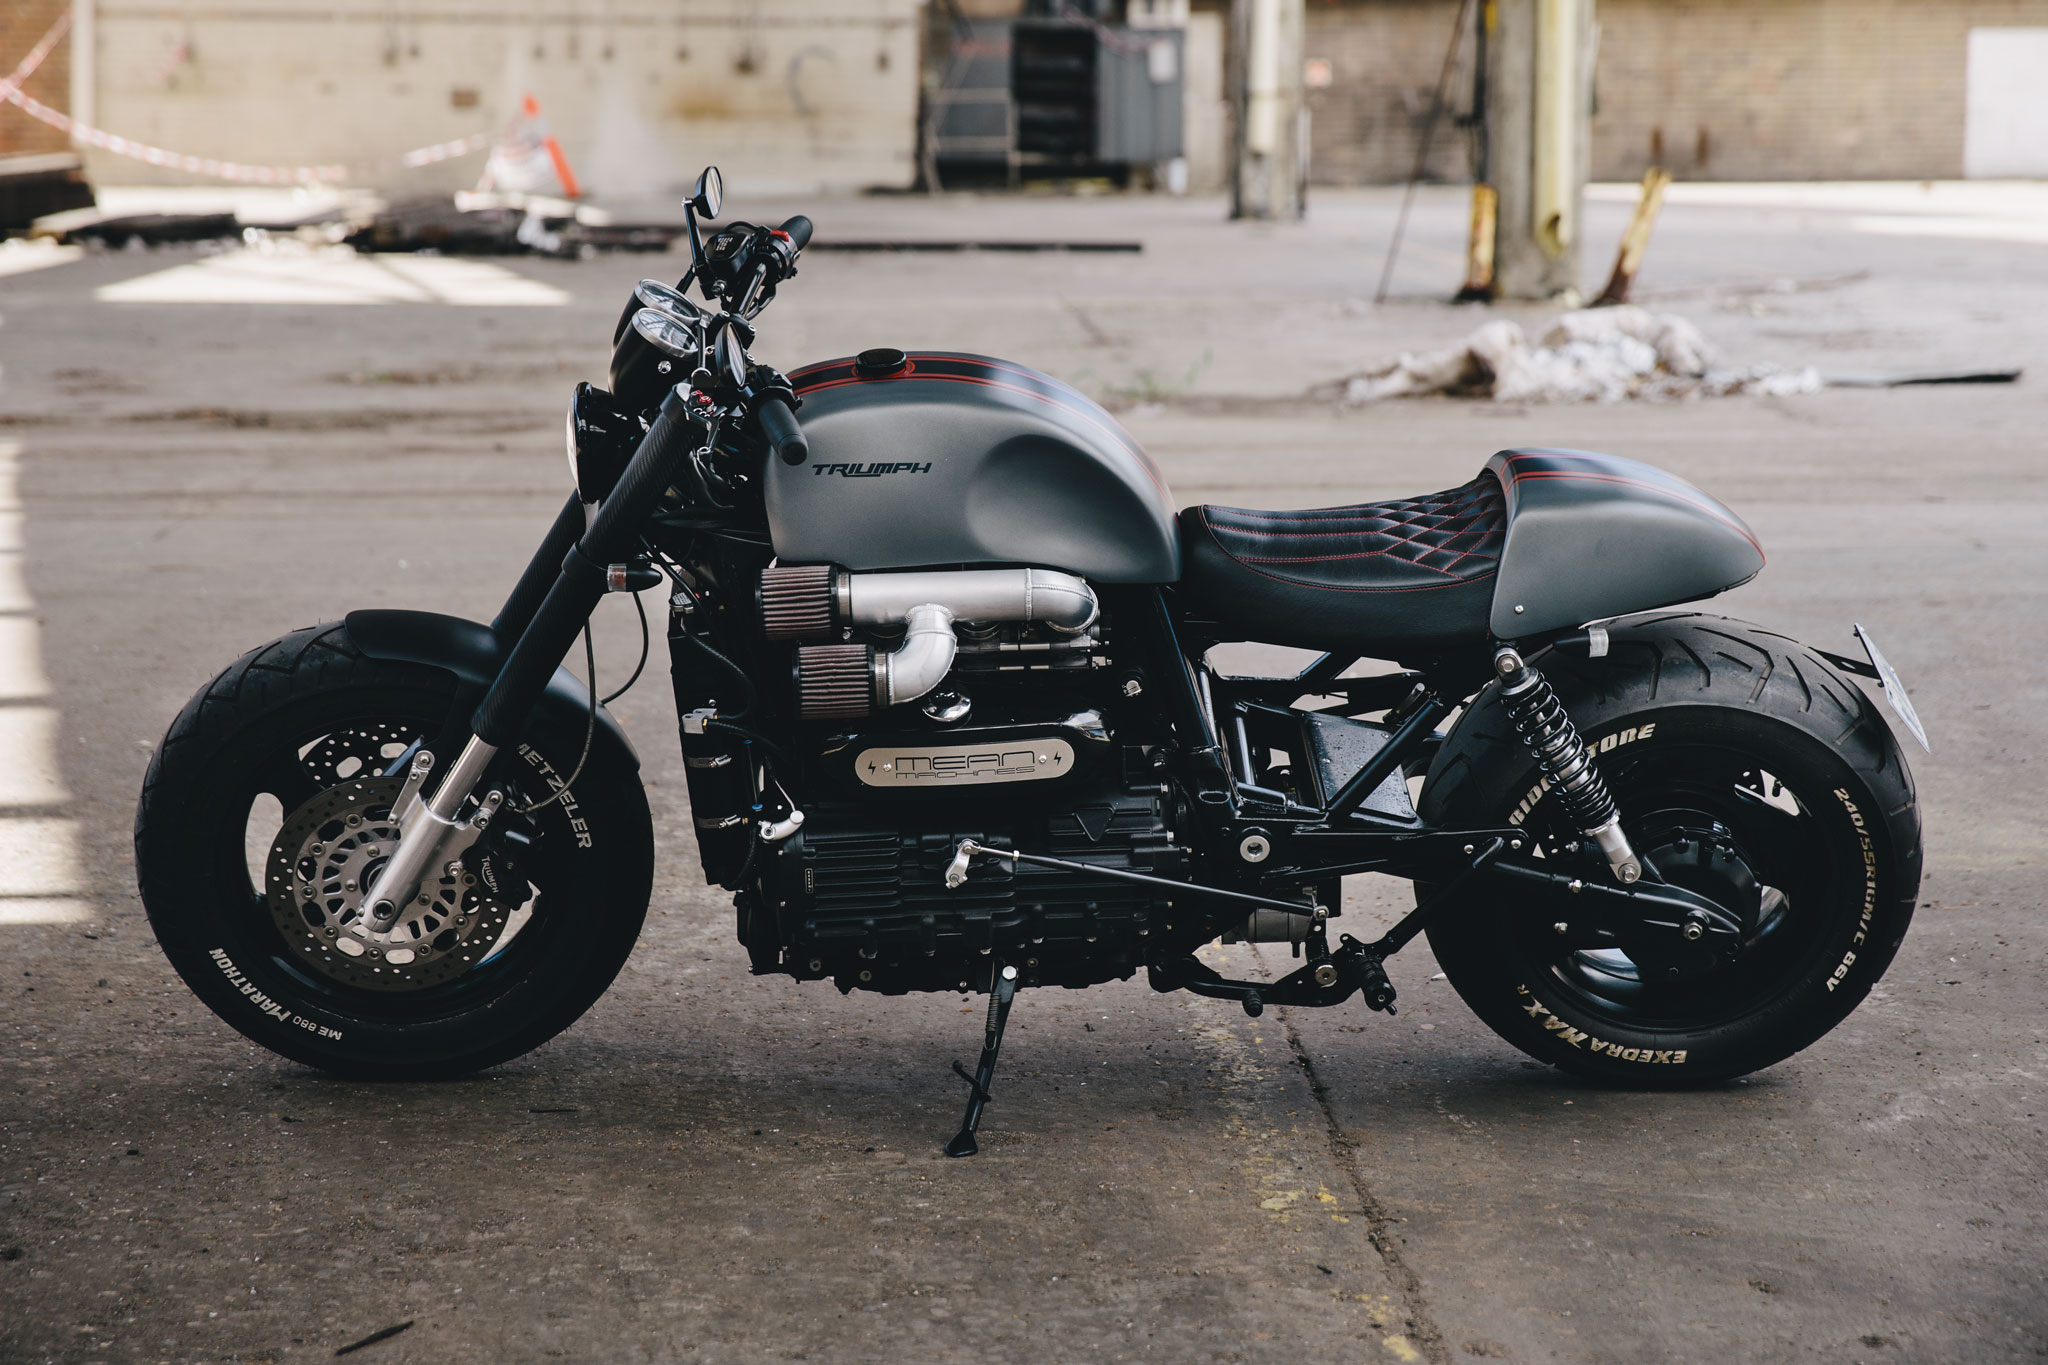 ttriumph_rocket_cafe_racer_0636